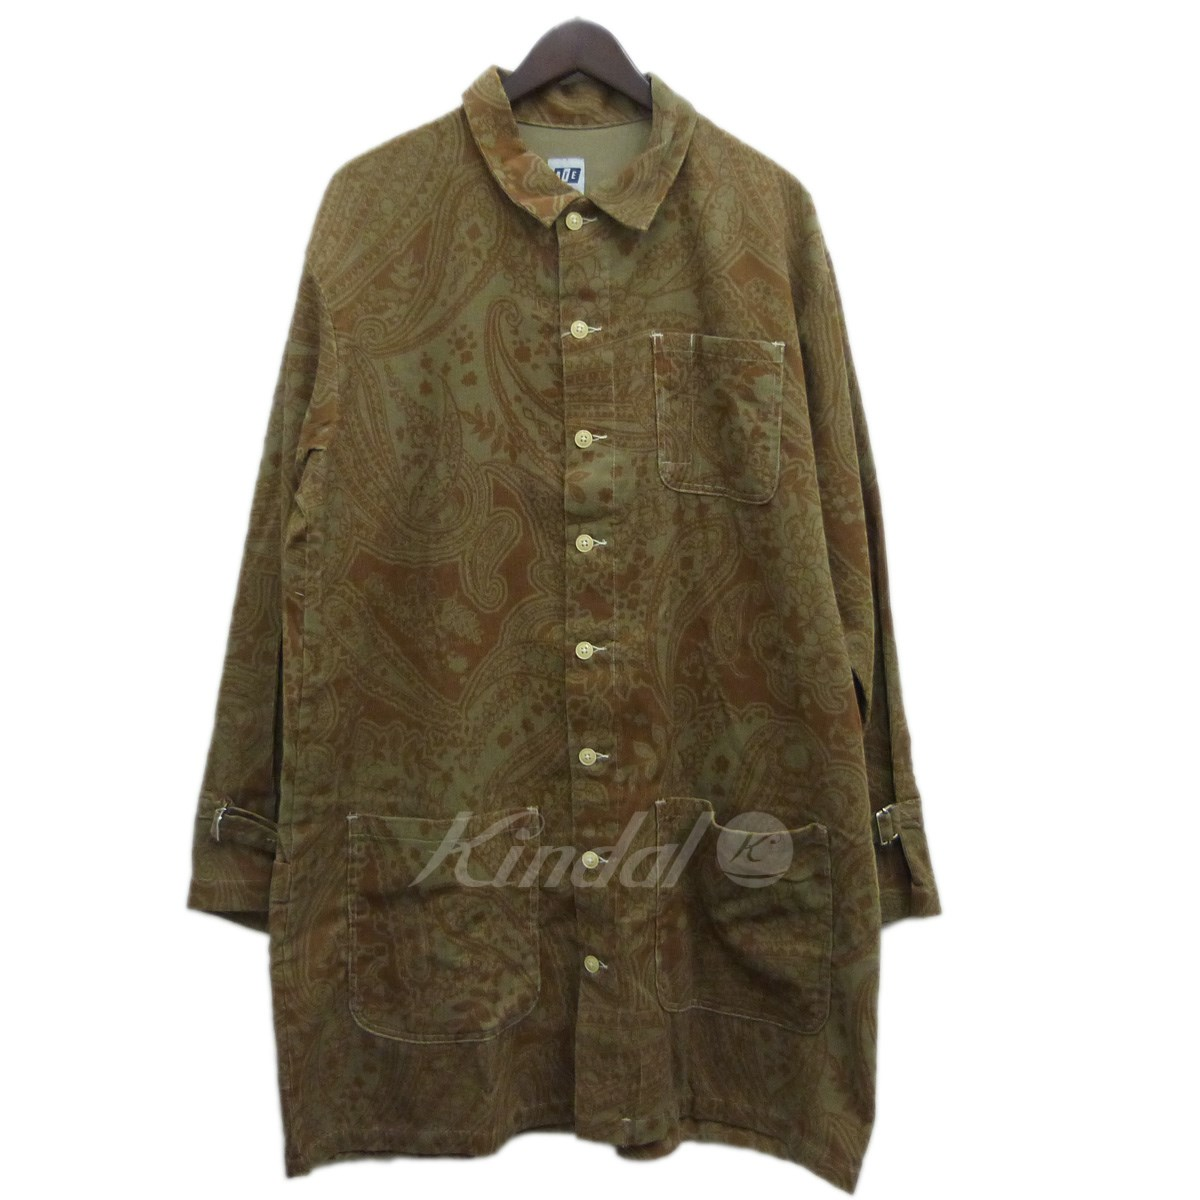 【中古】AiE(Arts in Education) 18SS「Strap Long Shirt-Printed Floral Corduroy」 ブラウン サイズ:M 【送料無料】 【021118】(エーアイイー)